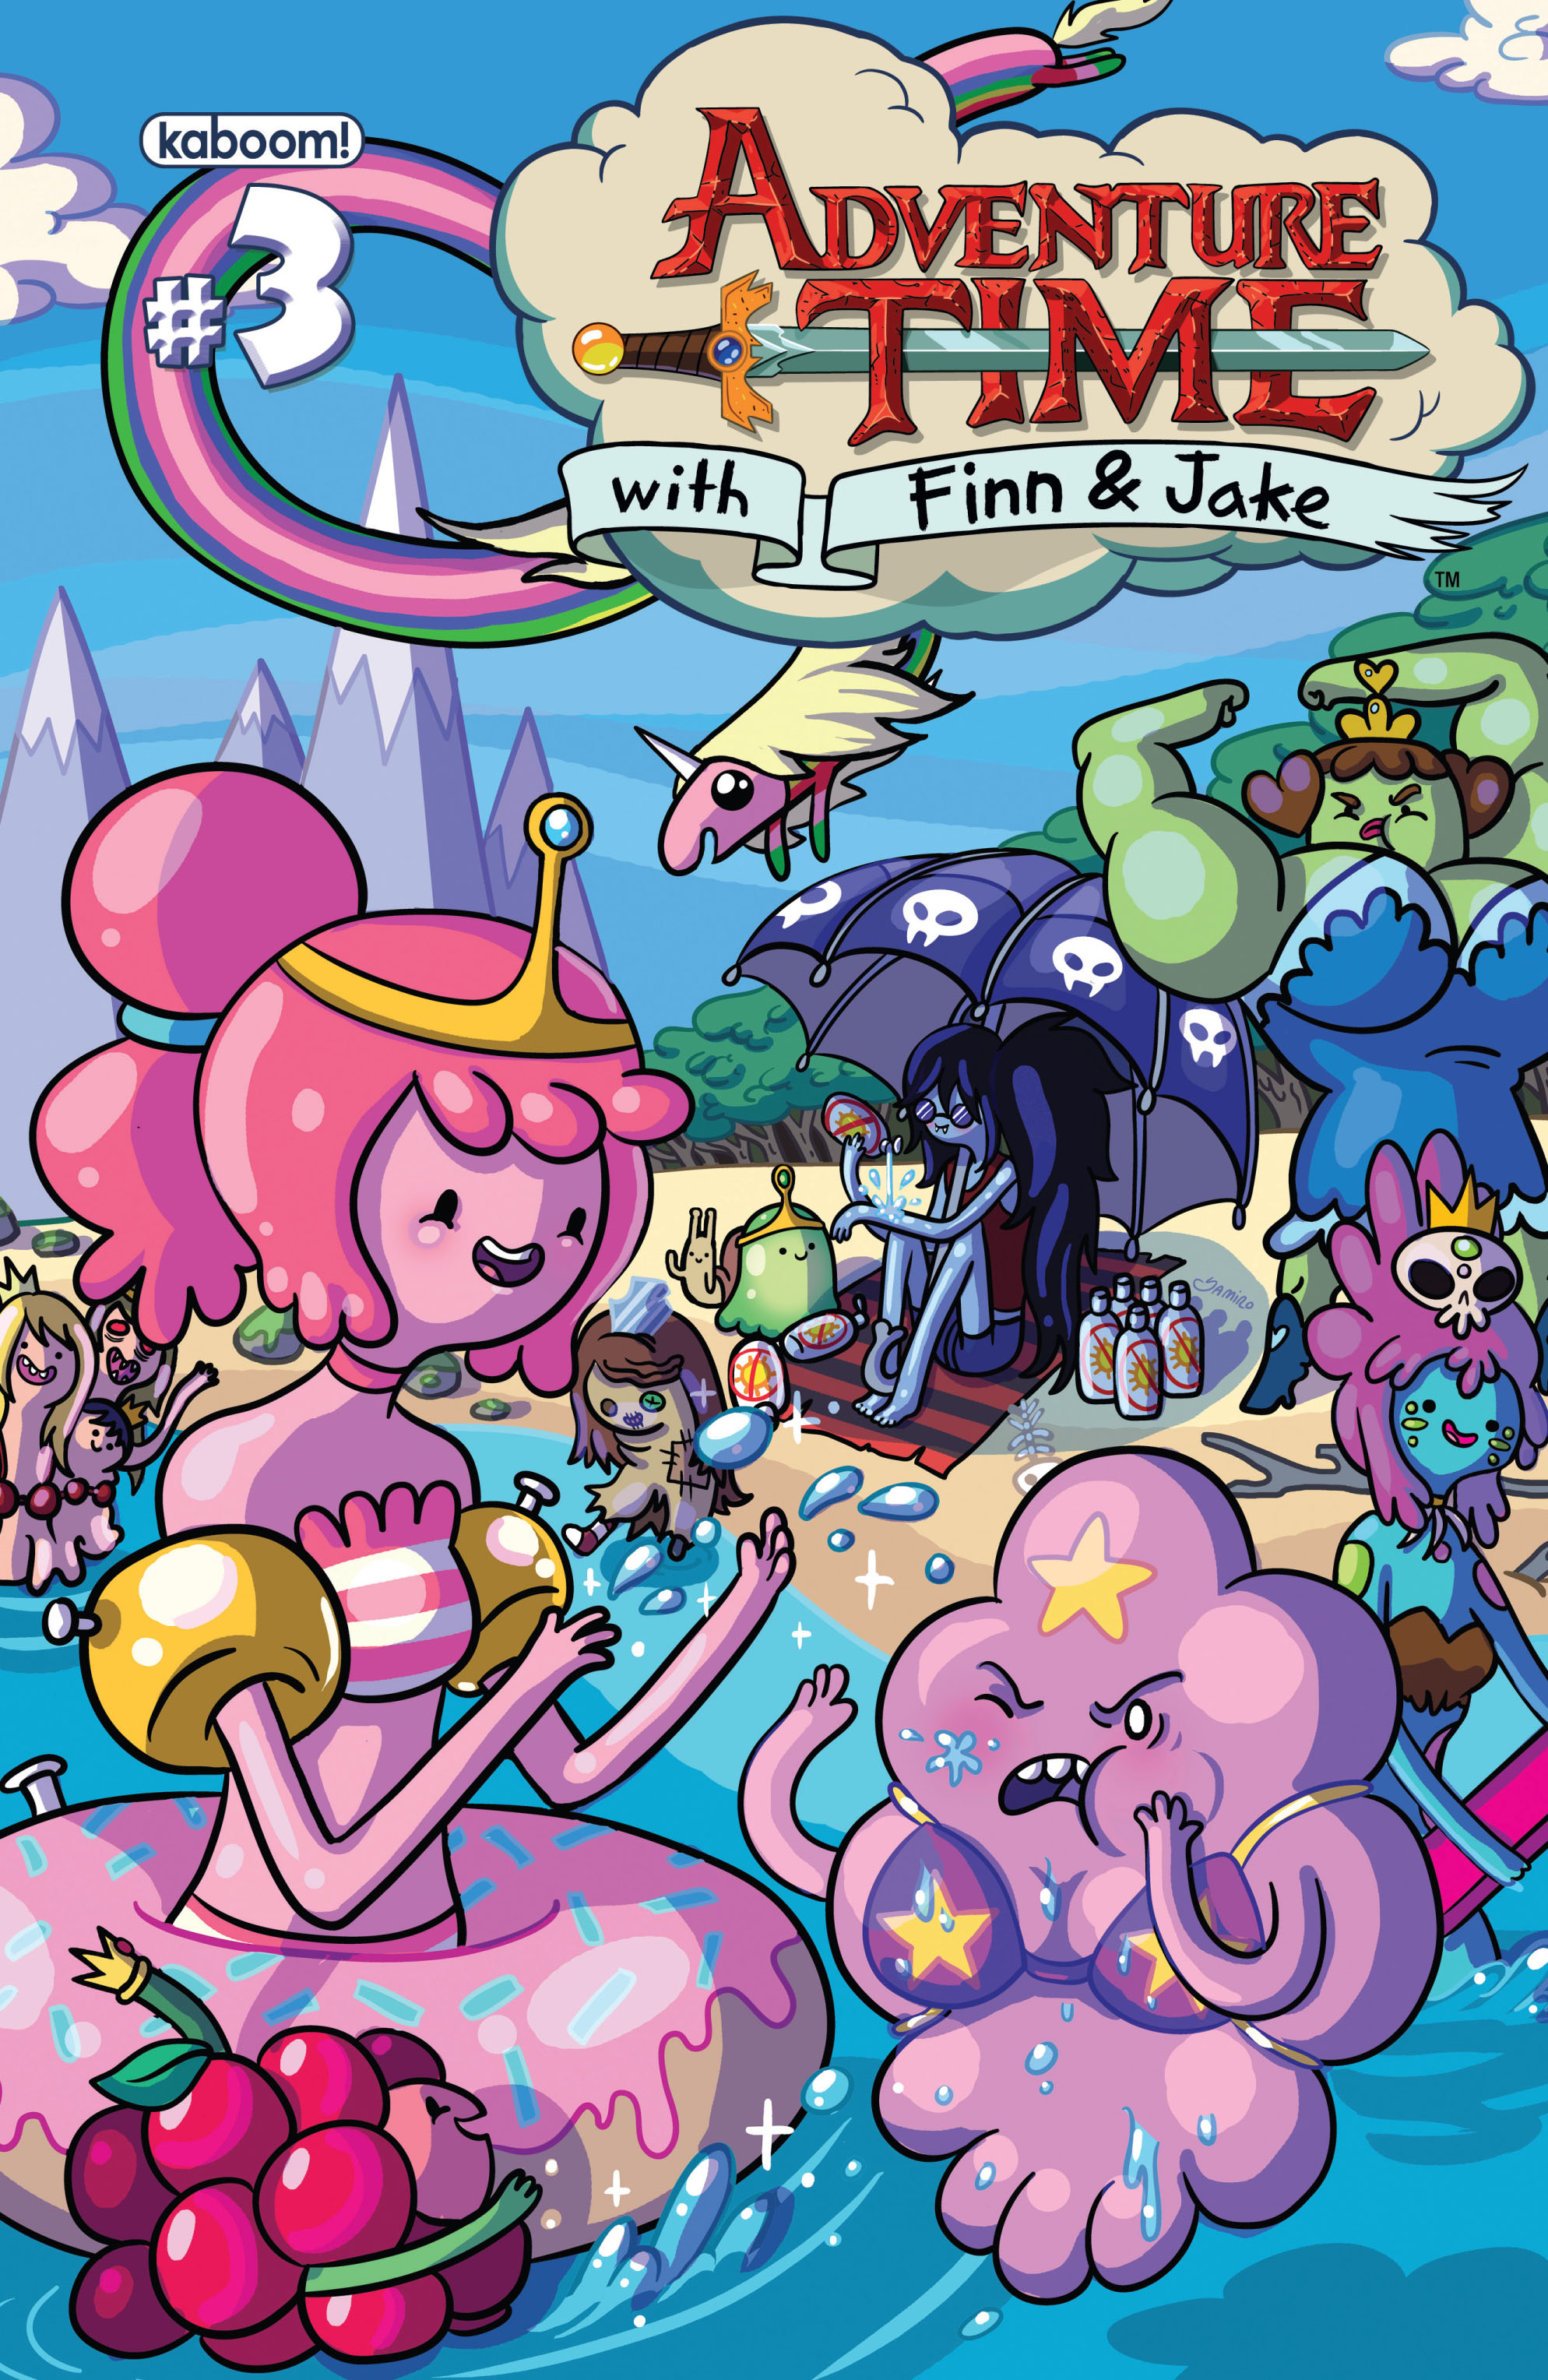 Read online Adventure Time comic -  Issue #3 - 2